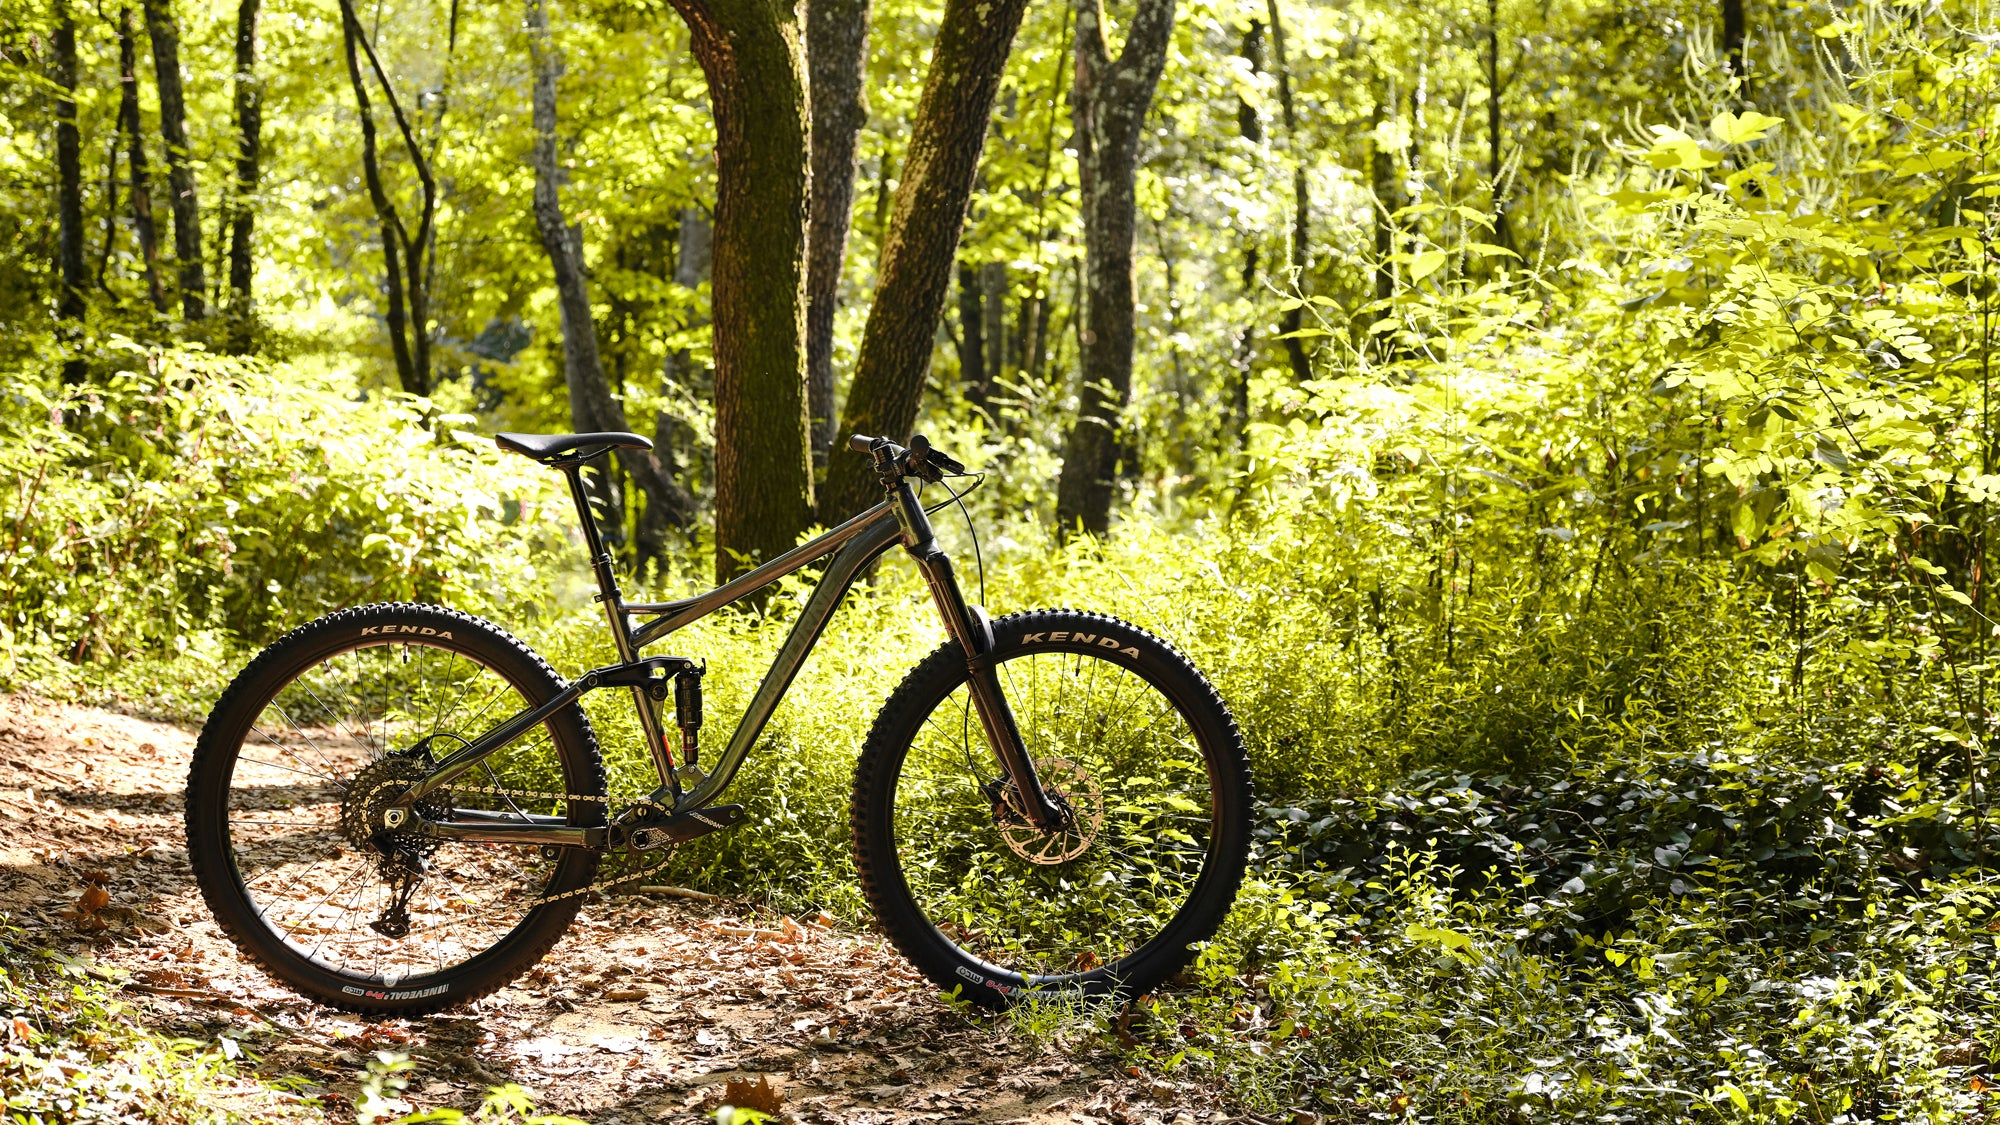 Introducing The Toxin 29 Full Suspension Trail Bike